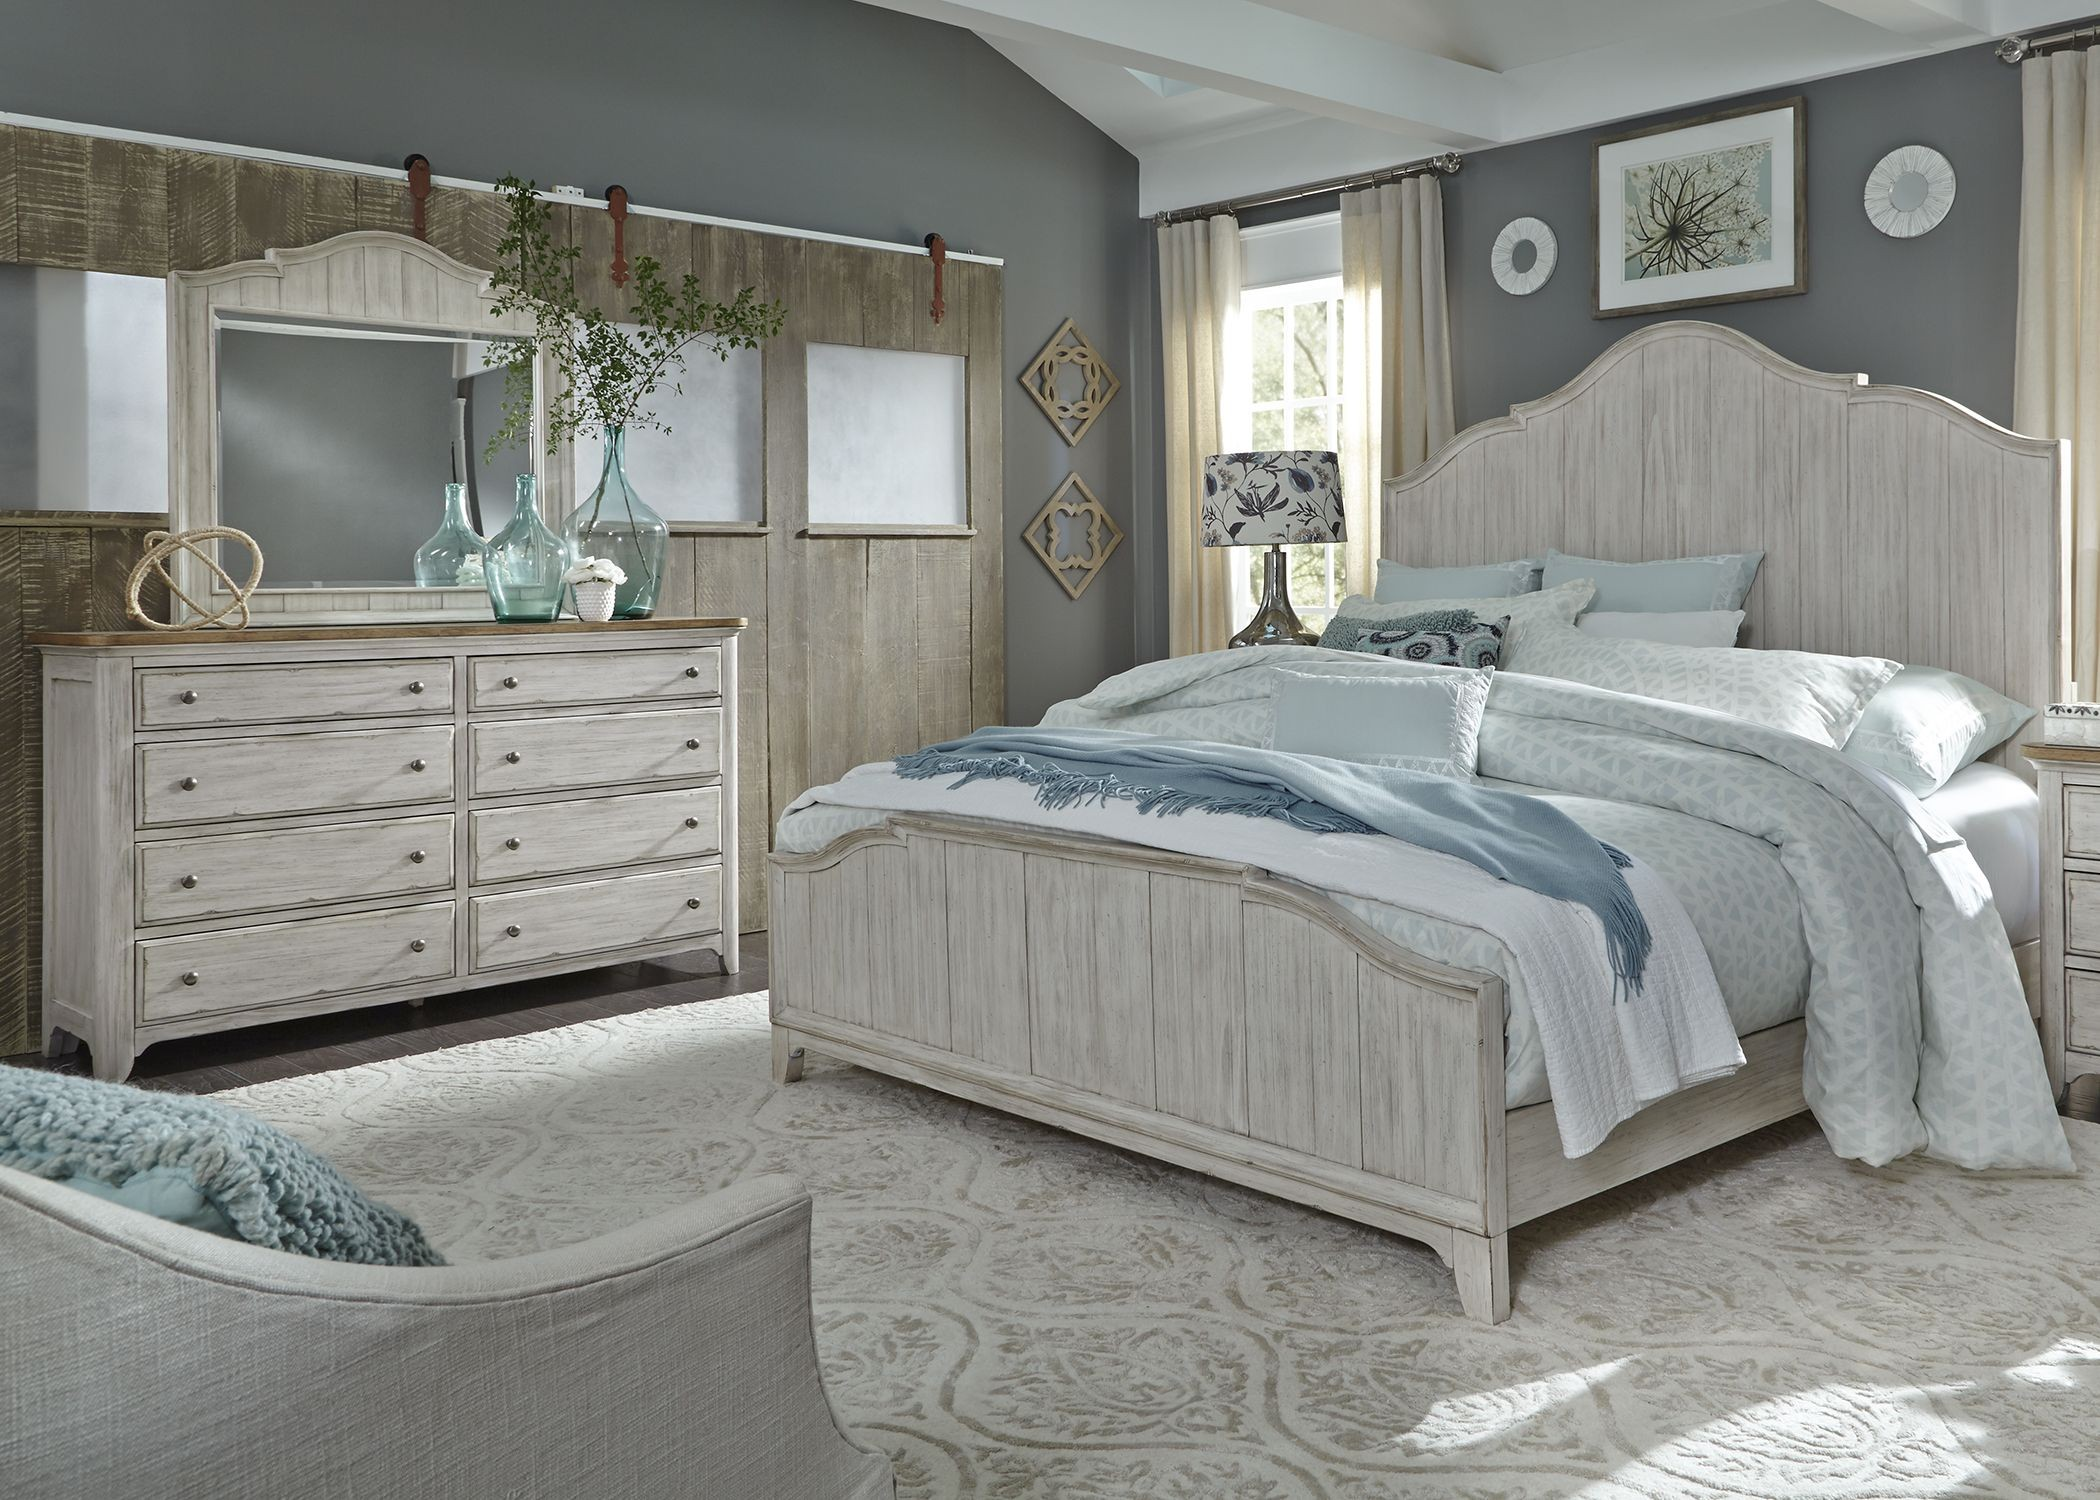 Liberty farmhouse reimagined antique white panel bedroom - White vintage bedroom furniture sets ...